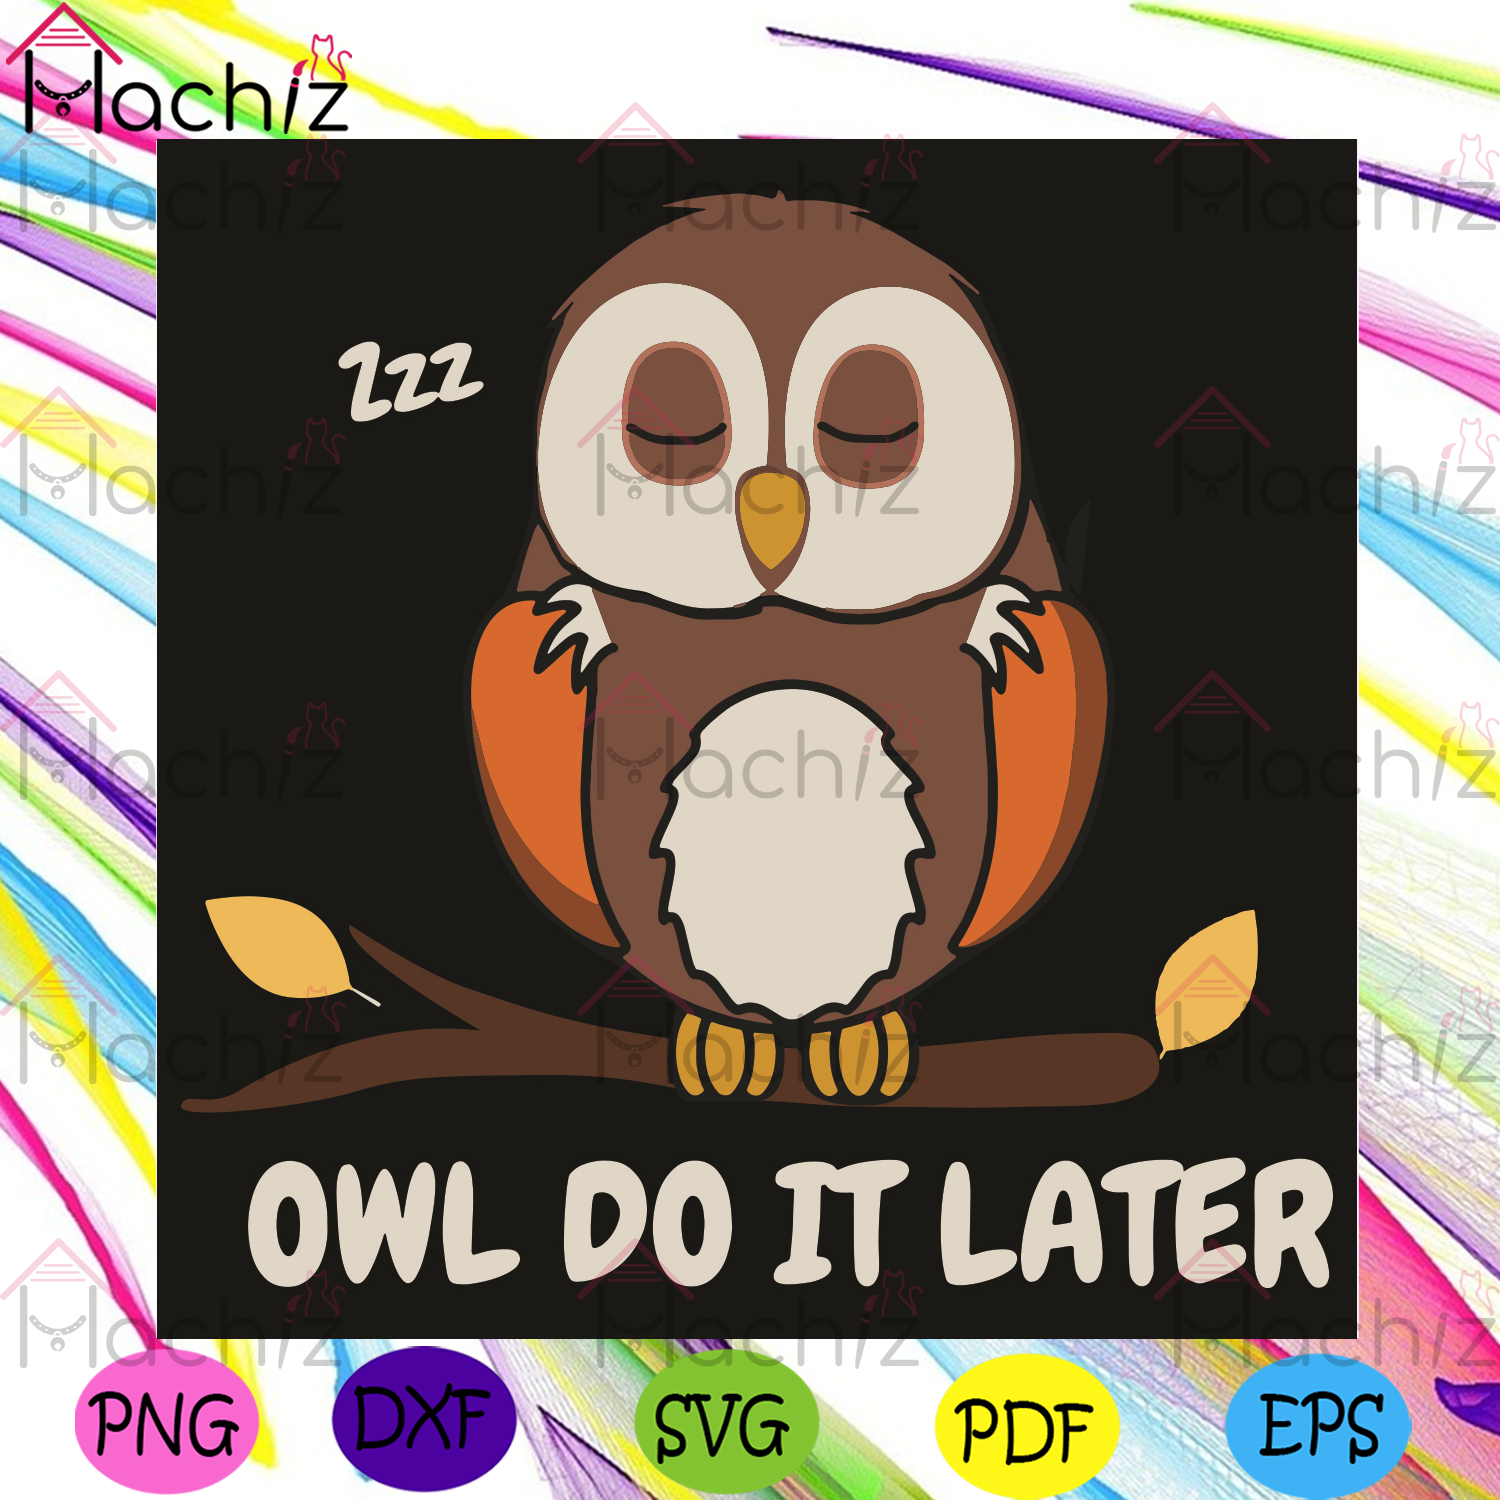 Owl Do It Later Svg, Trending Svg, Owl Svg, Owl Bird Svg, Owl Lovers Svg, Sleeping Owl Svg, Cute Owl Svg, Tree Svg, Sleeping Svg, Nights Svg, Sleeping Lovers Svg, Animals Svg, Animals Gifts Svg, Owl Gift Svg, Funny Design Svg